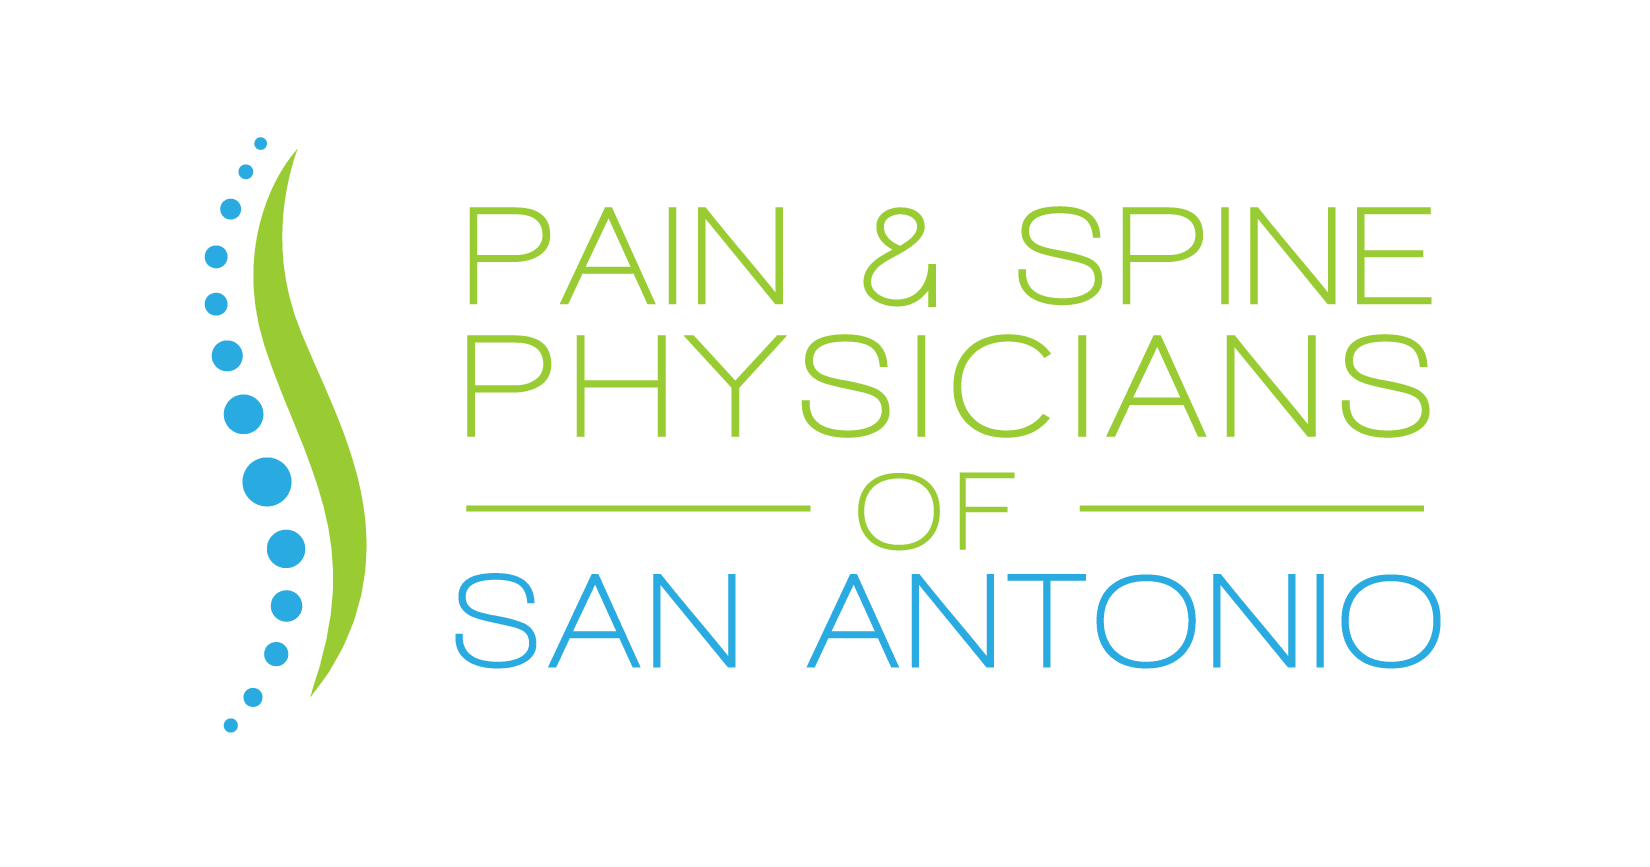 Narciso Gonzalez, MD - Pain & Spine Physicians of San Antonio